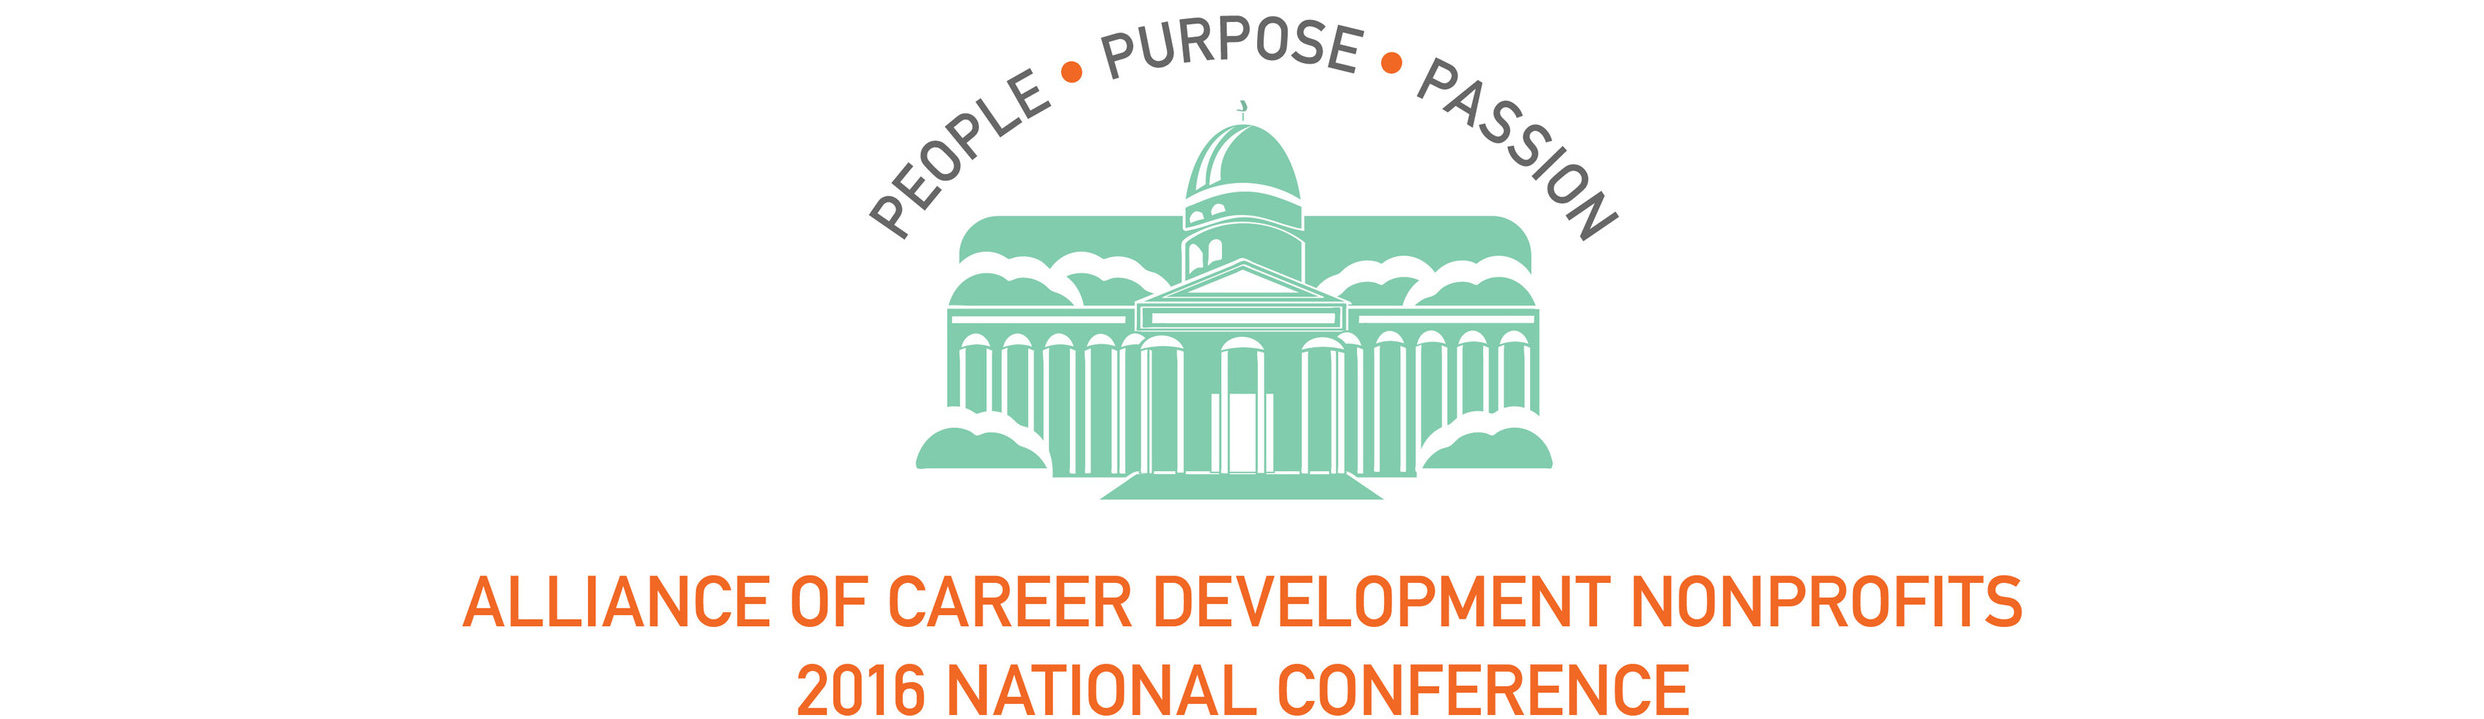 Conference-logo-2016